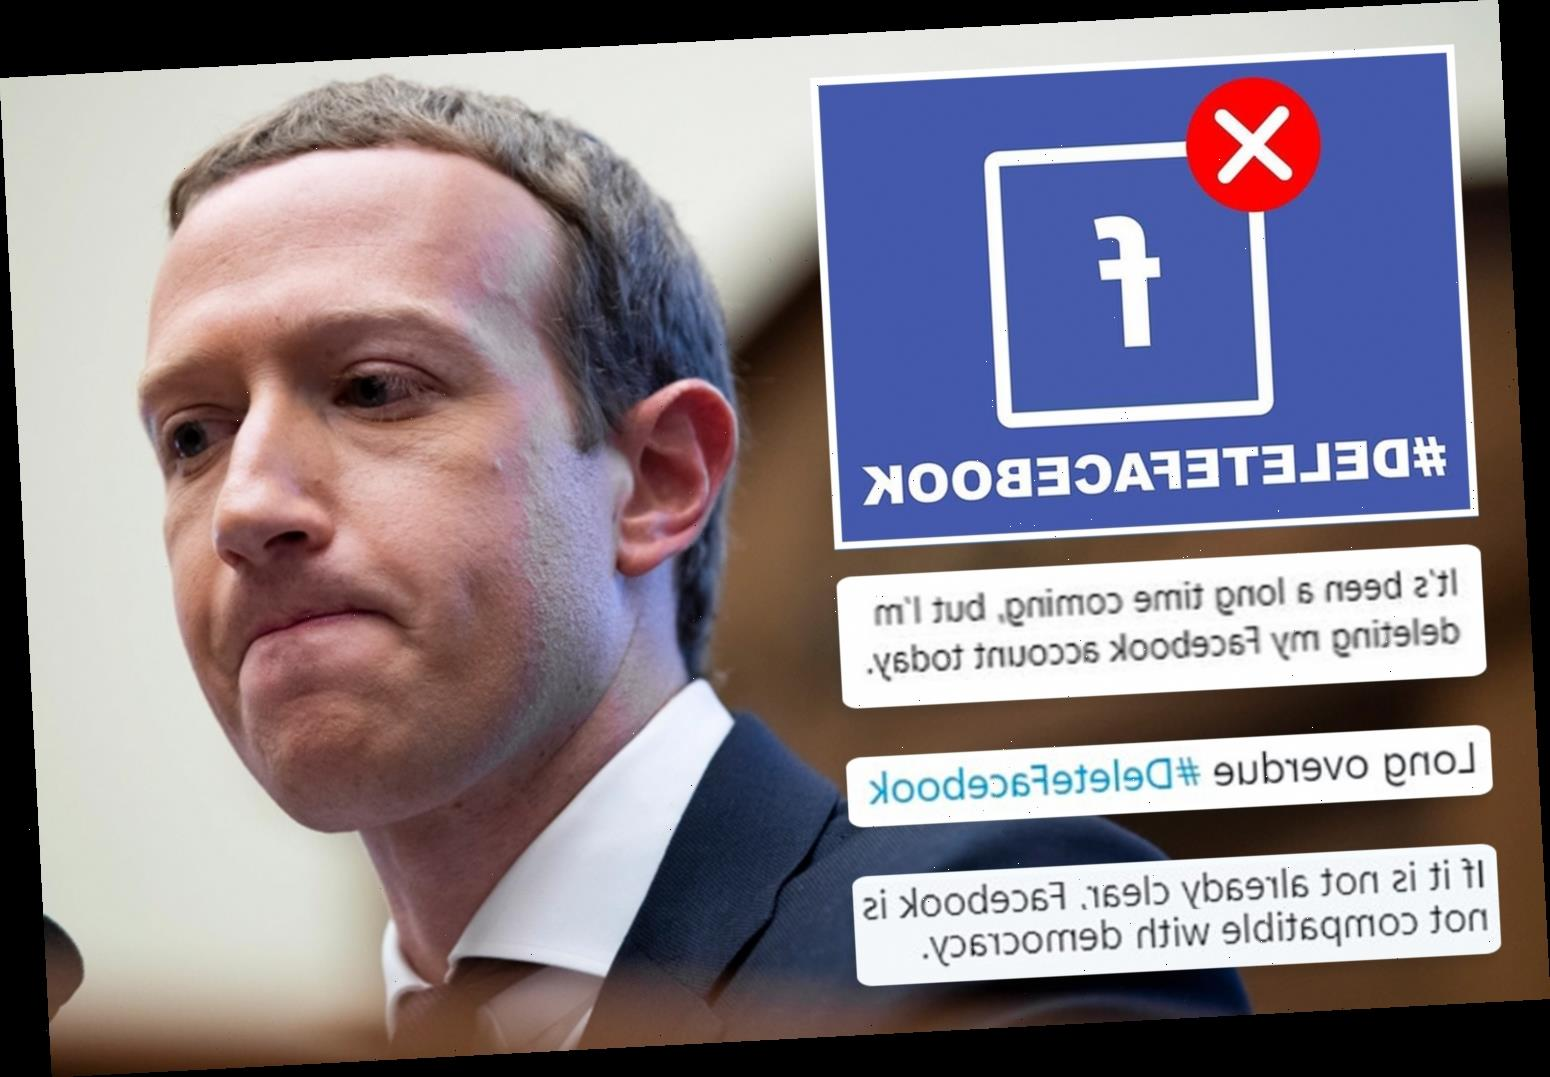 #DeleteFacebook campaign rages as users ditch site in protest over 'bullying' Aussie news ban